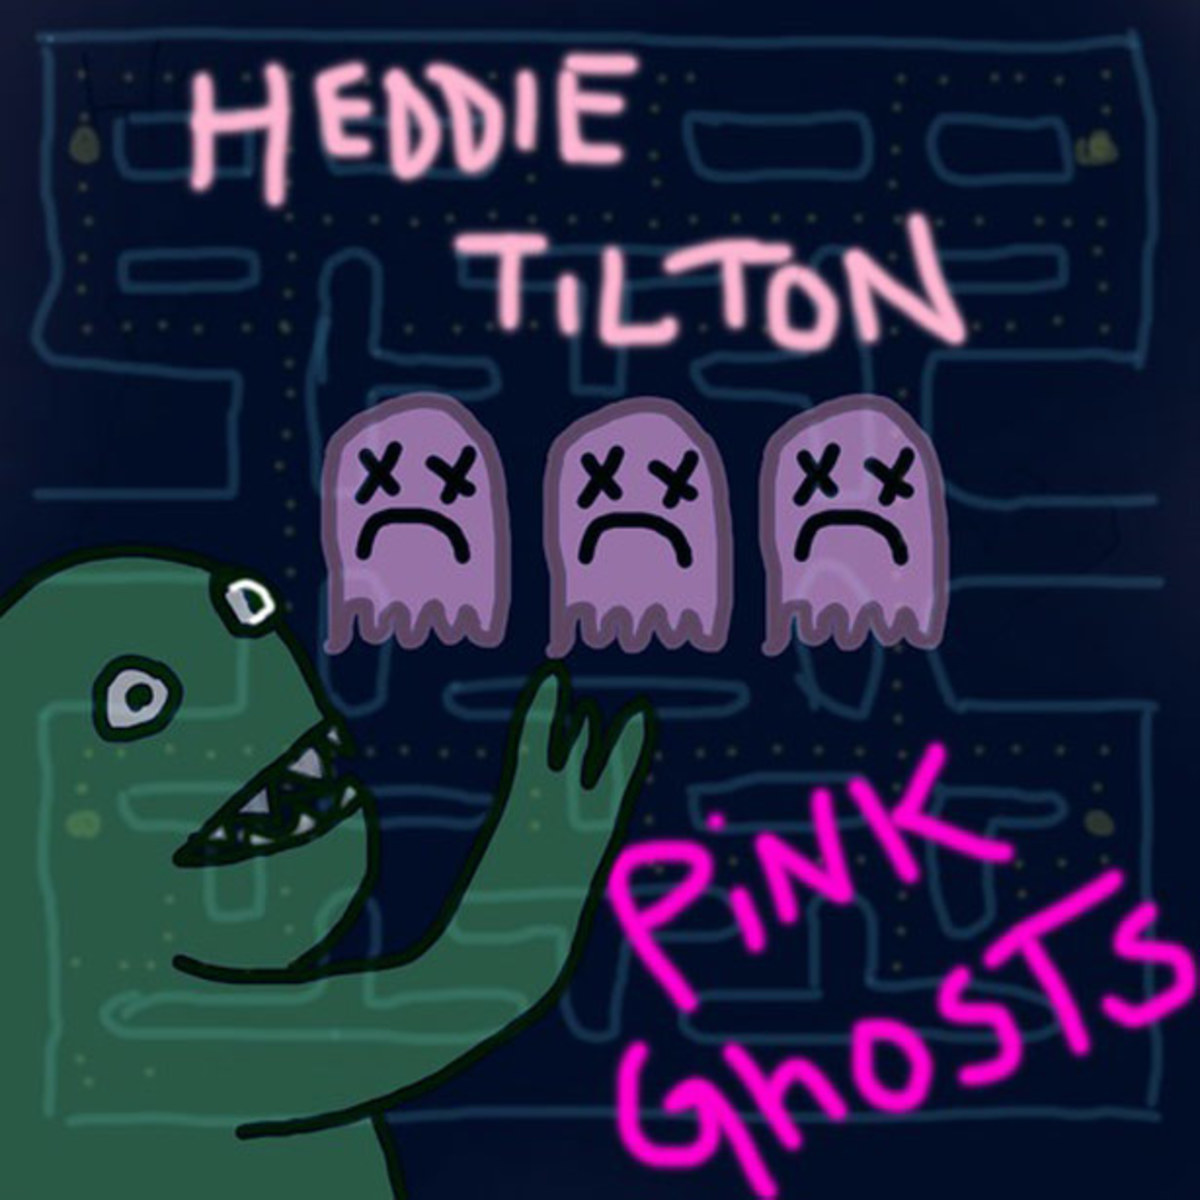 "Exclusive Premier: Heddie Tilton ""Pink Ghost"" - New Electronic Music"